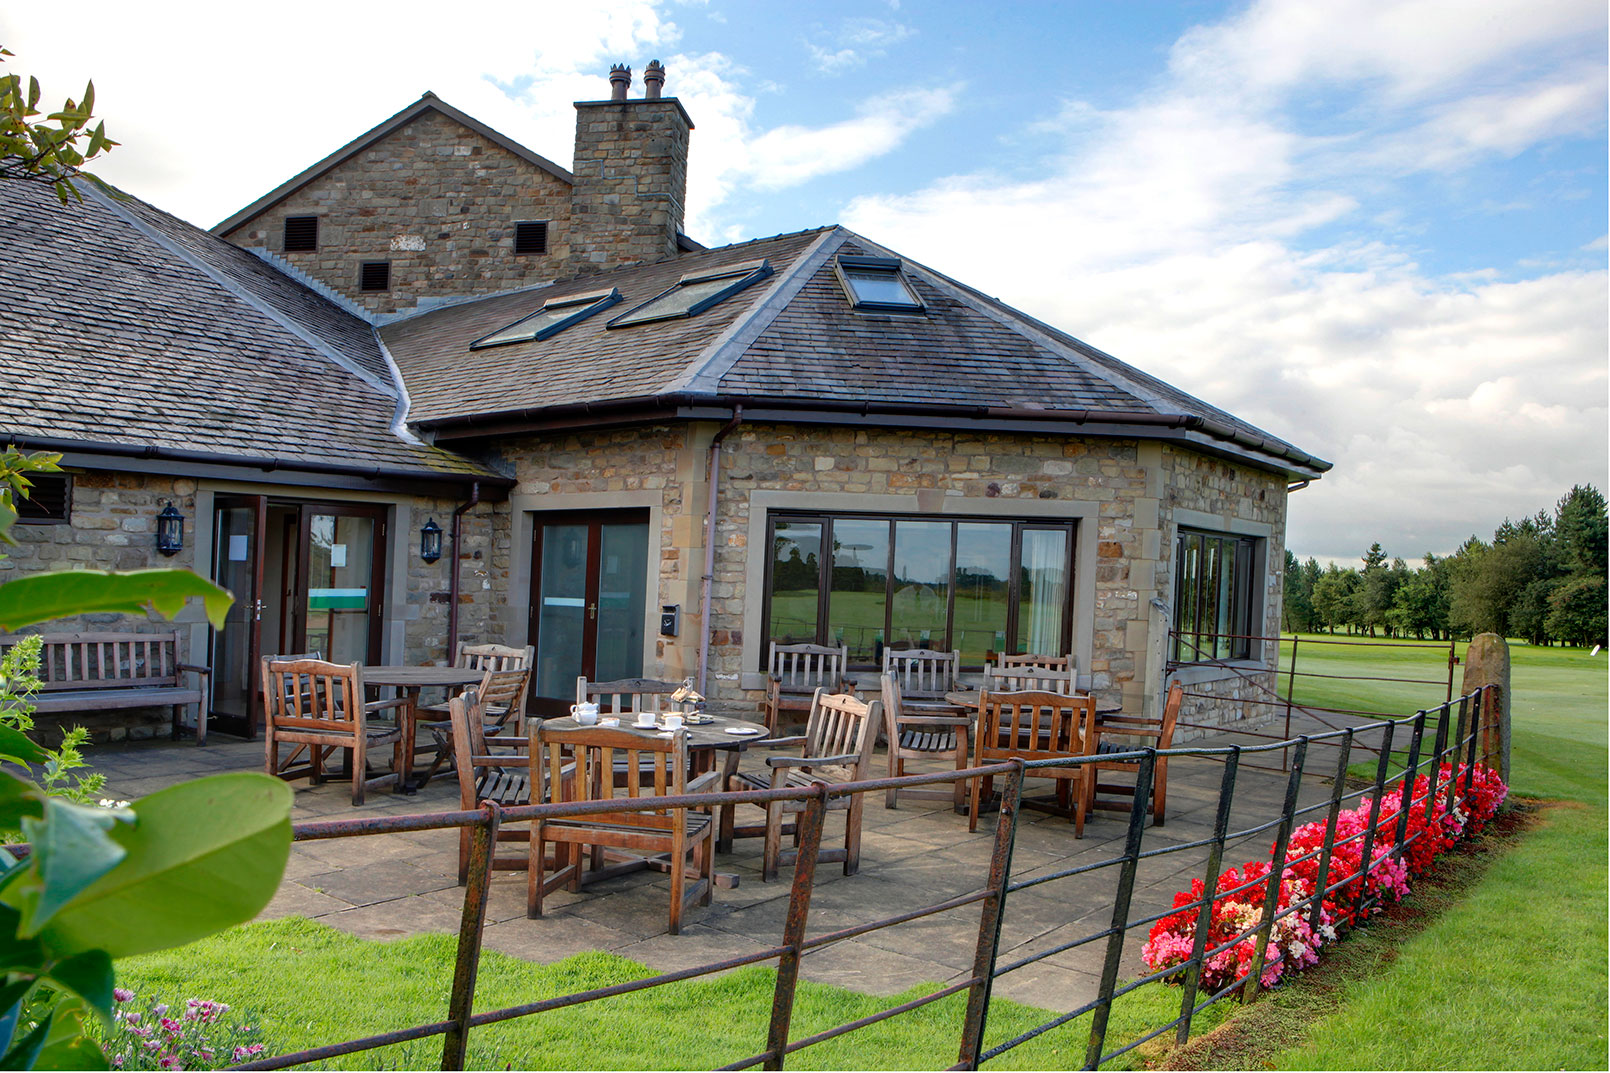 Best Western Preston Garstang Country Hotel And Golf Club | Bowgreave Drive, Garstang PR3 1YE | +44 1995 600100